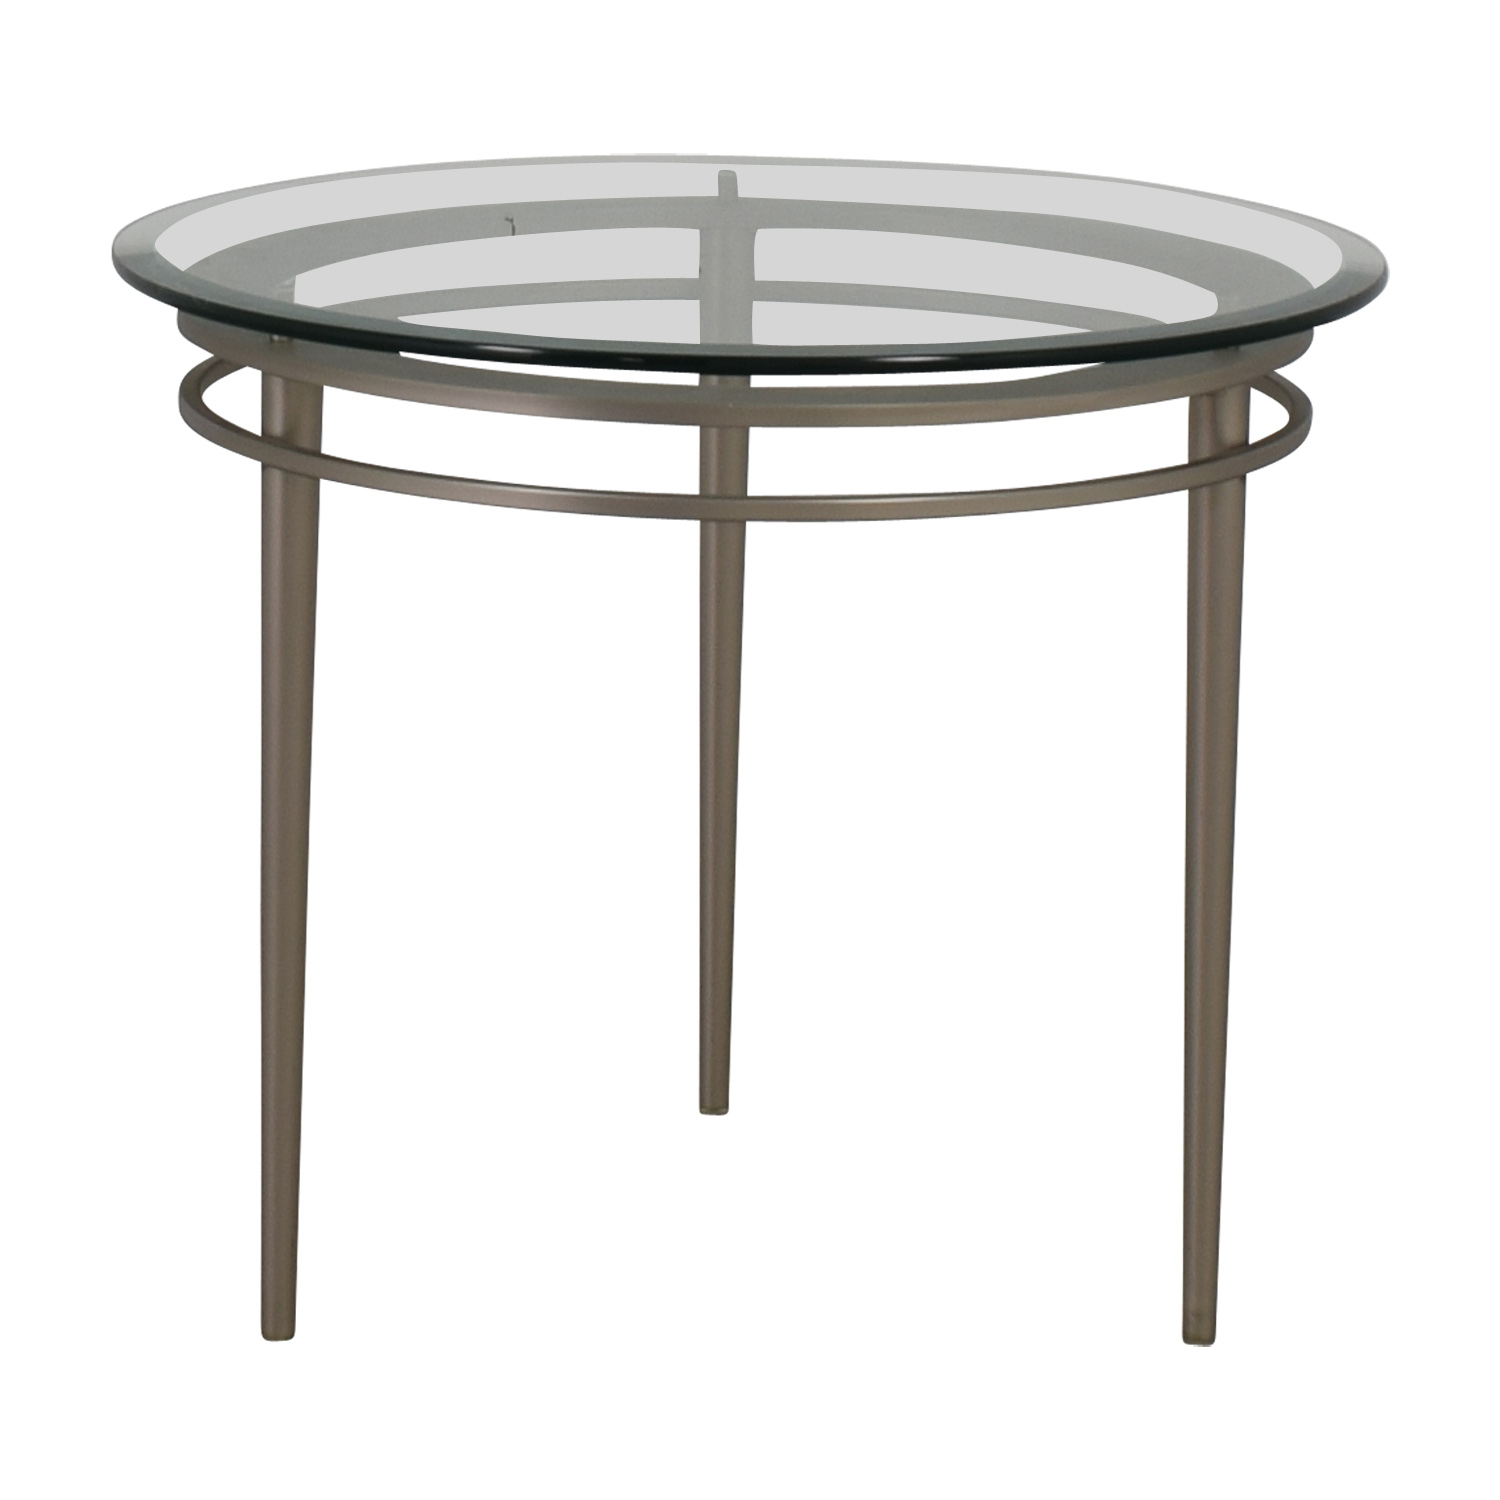 buy Ethan Allen Ethan Allen Round Glass and Chrome Side Table online